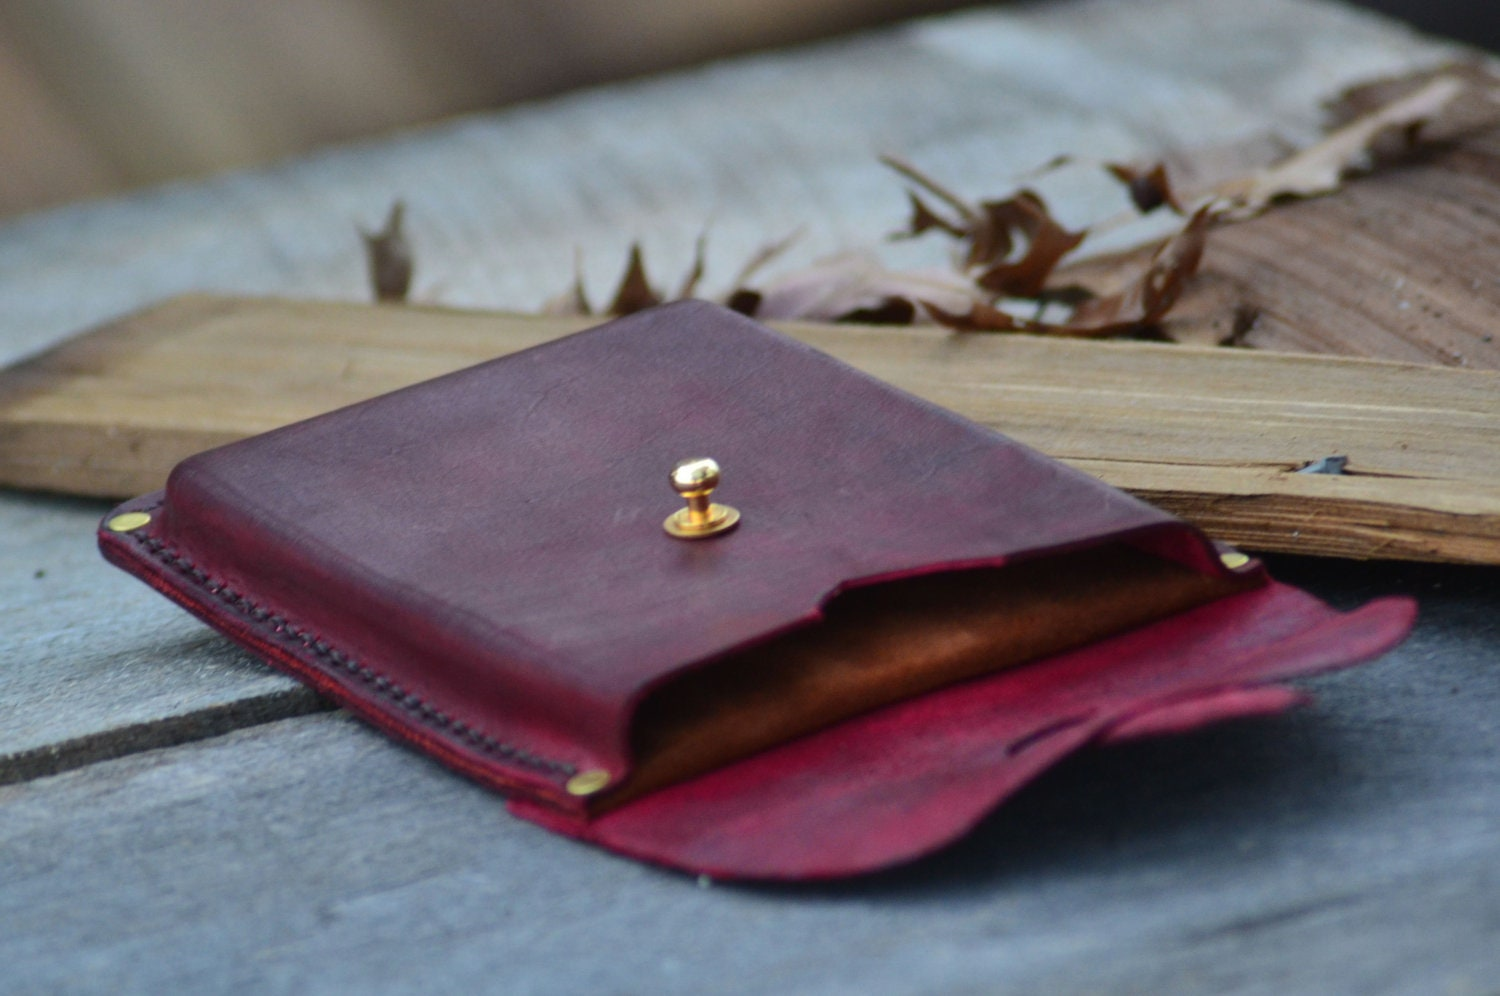 Handmade Kindle Fire Case in Merlot Red - Rivetandleatherco